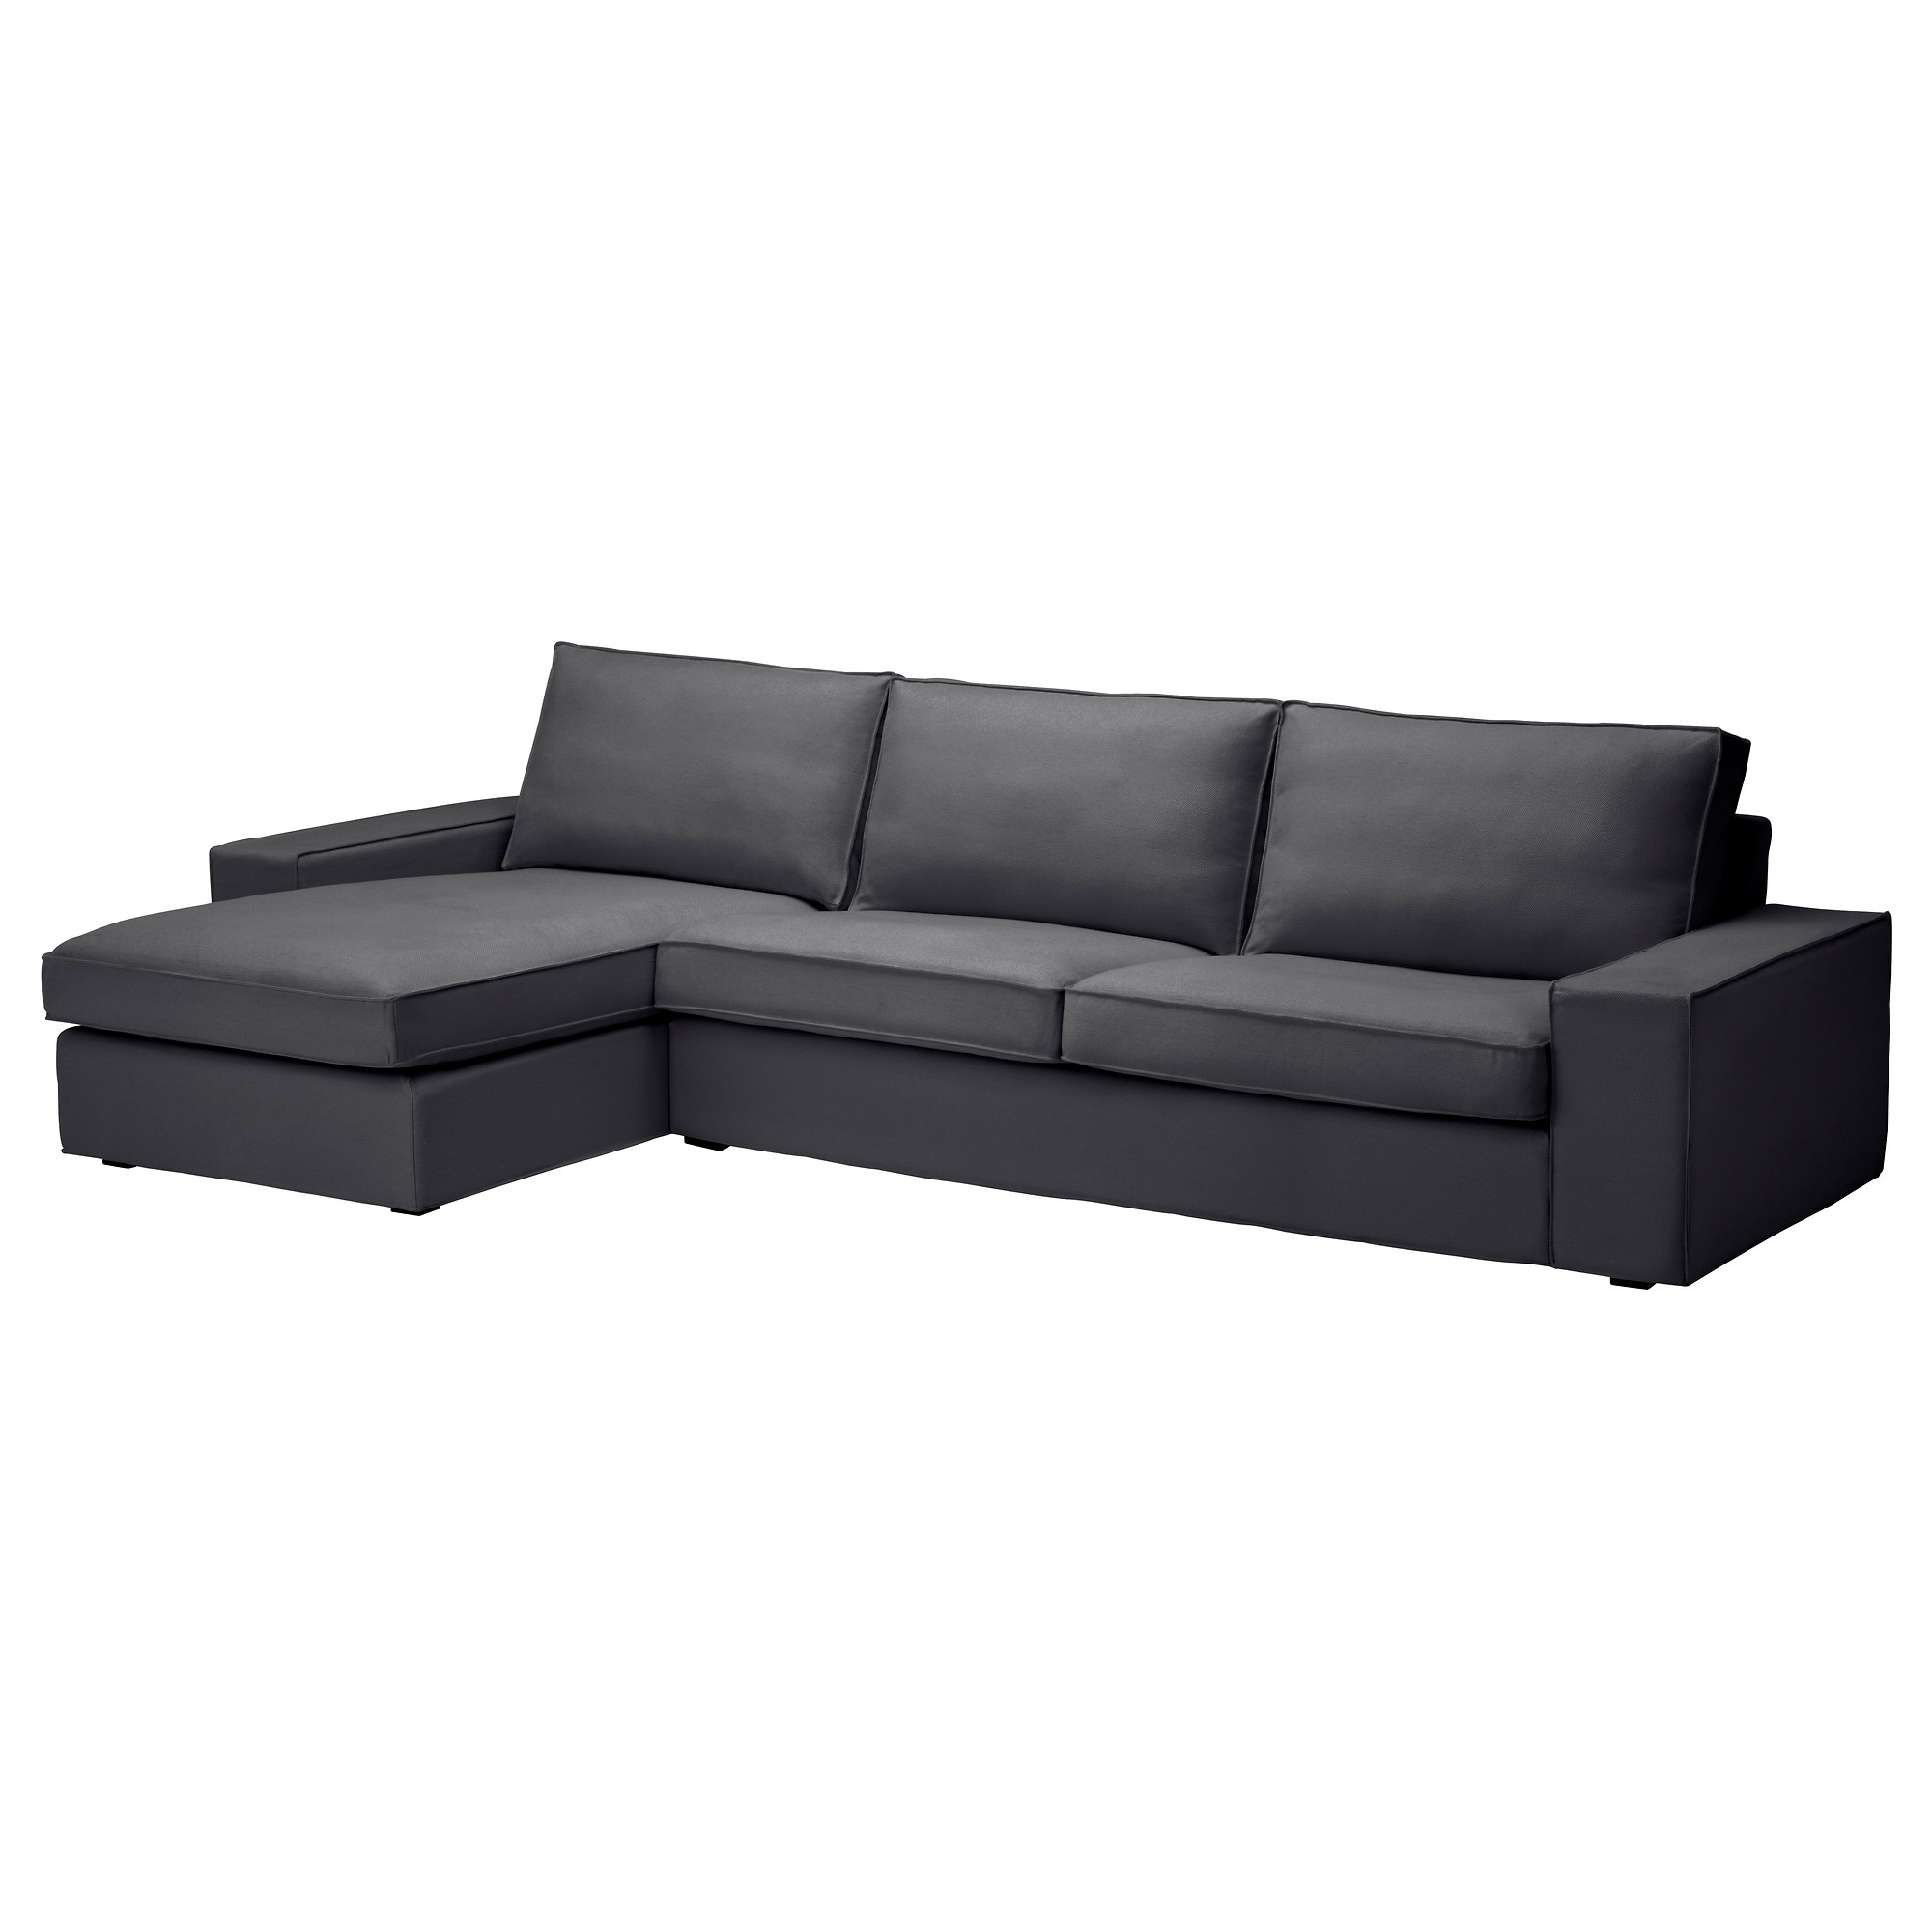 Gorgeous black leather sectional for elegant living room design with black leather sectional sofa